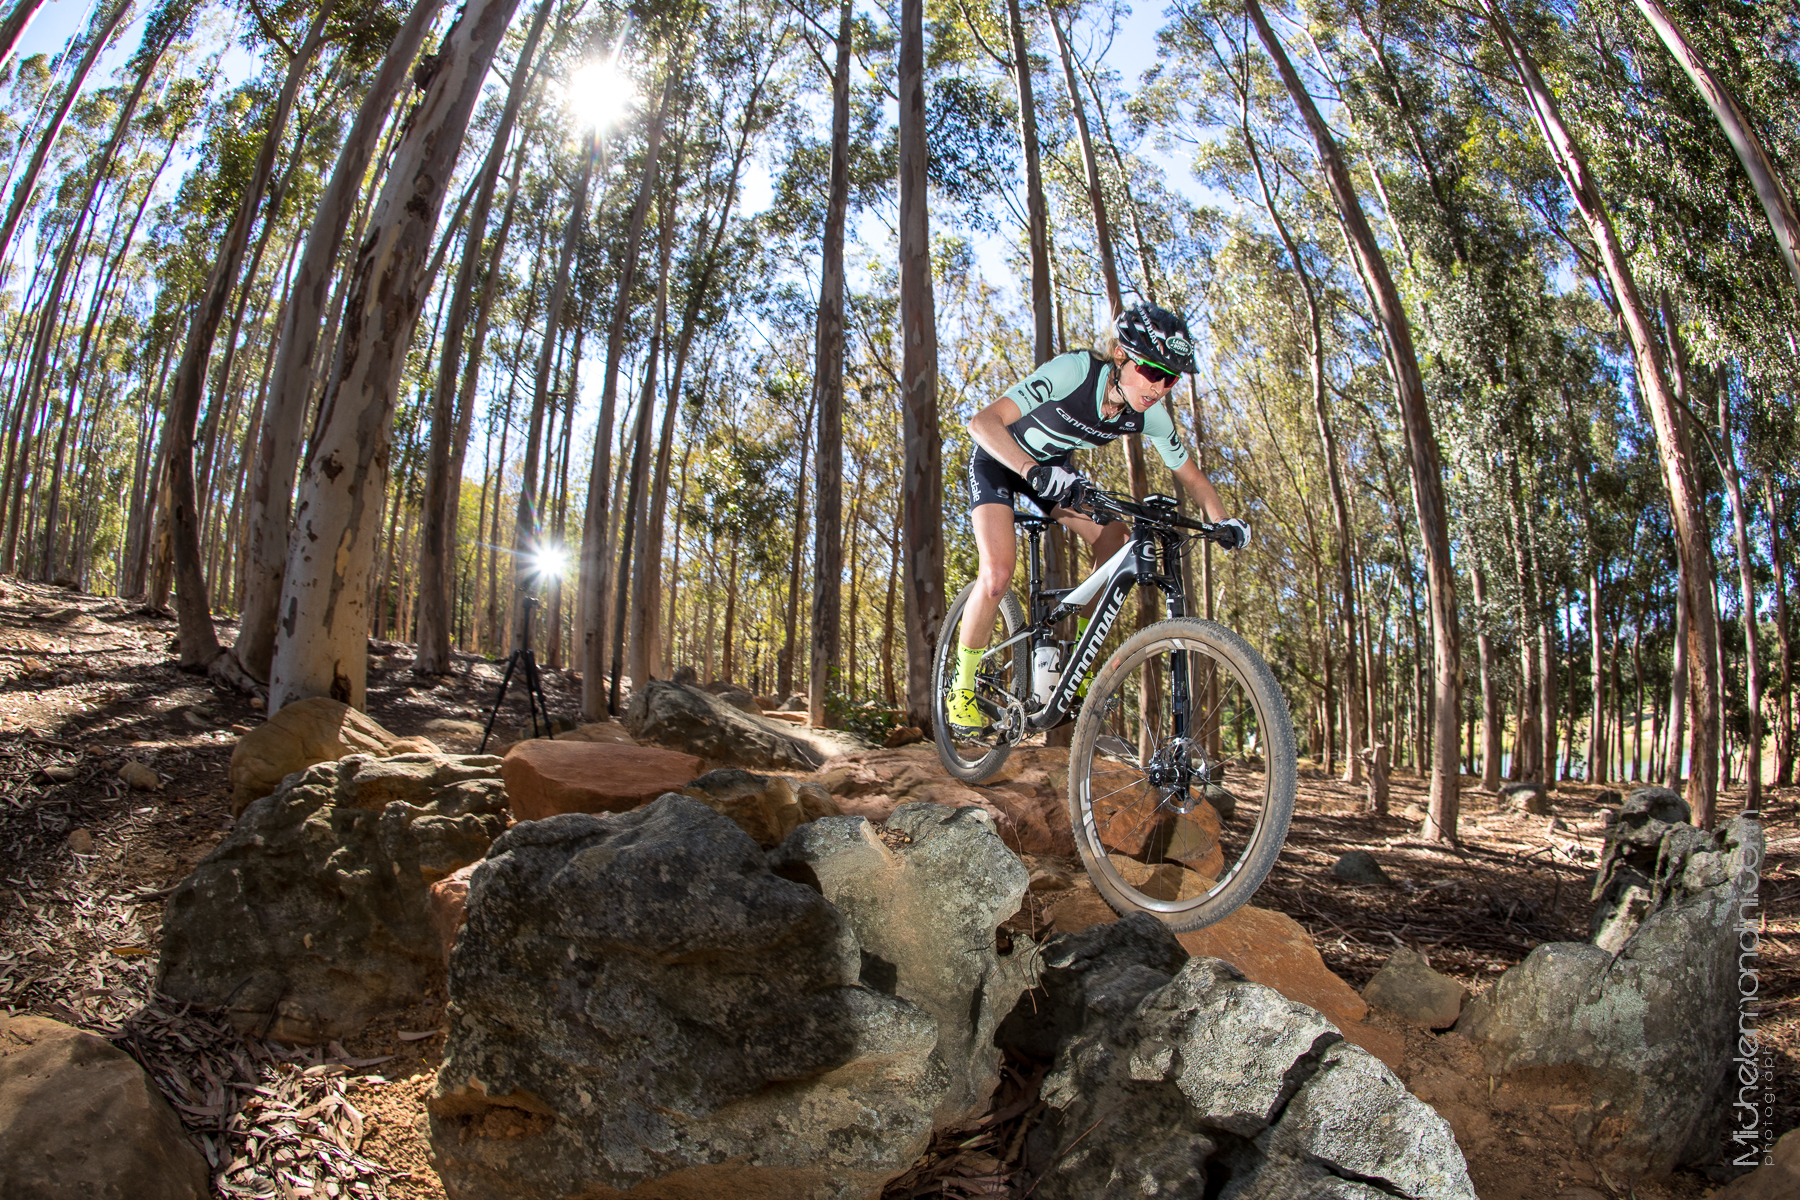 Time to shoot the new jersey and the new bikes of CFR - Stellenbosch - South Africa - Ph: Michele Mondini